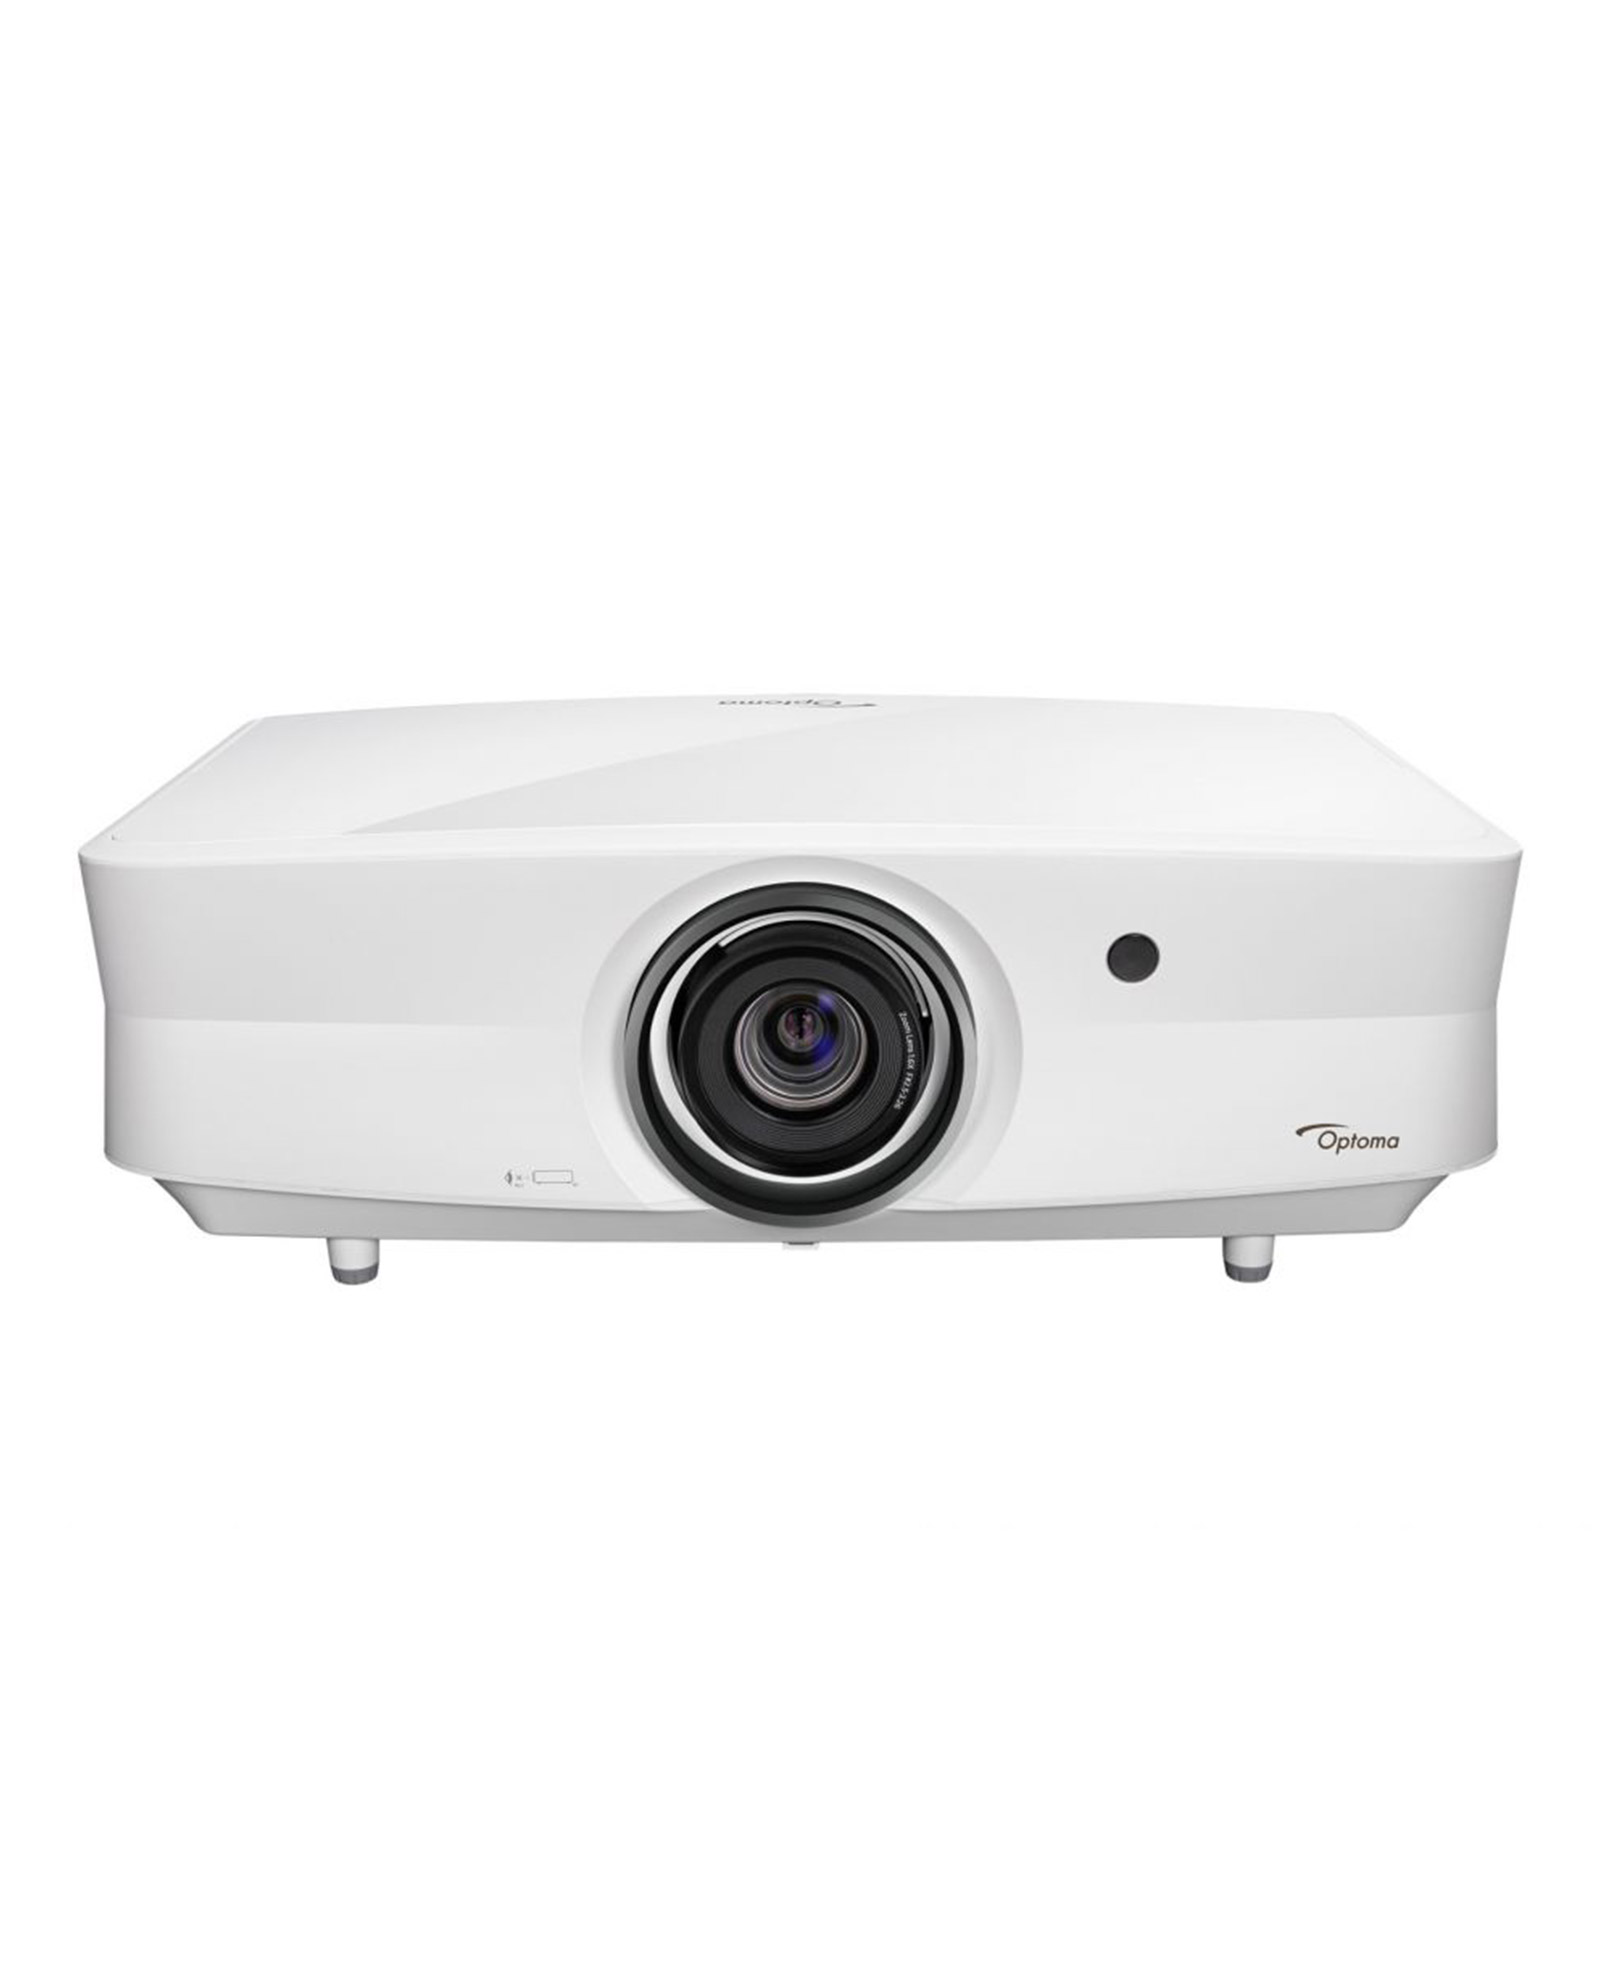 Optoma Uhd65lv 4k Udh Hdr Laser Home Theatre Projector